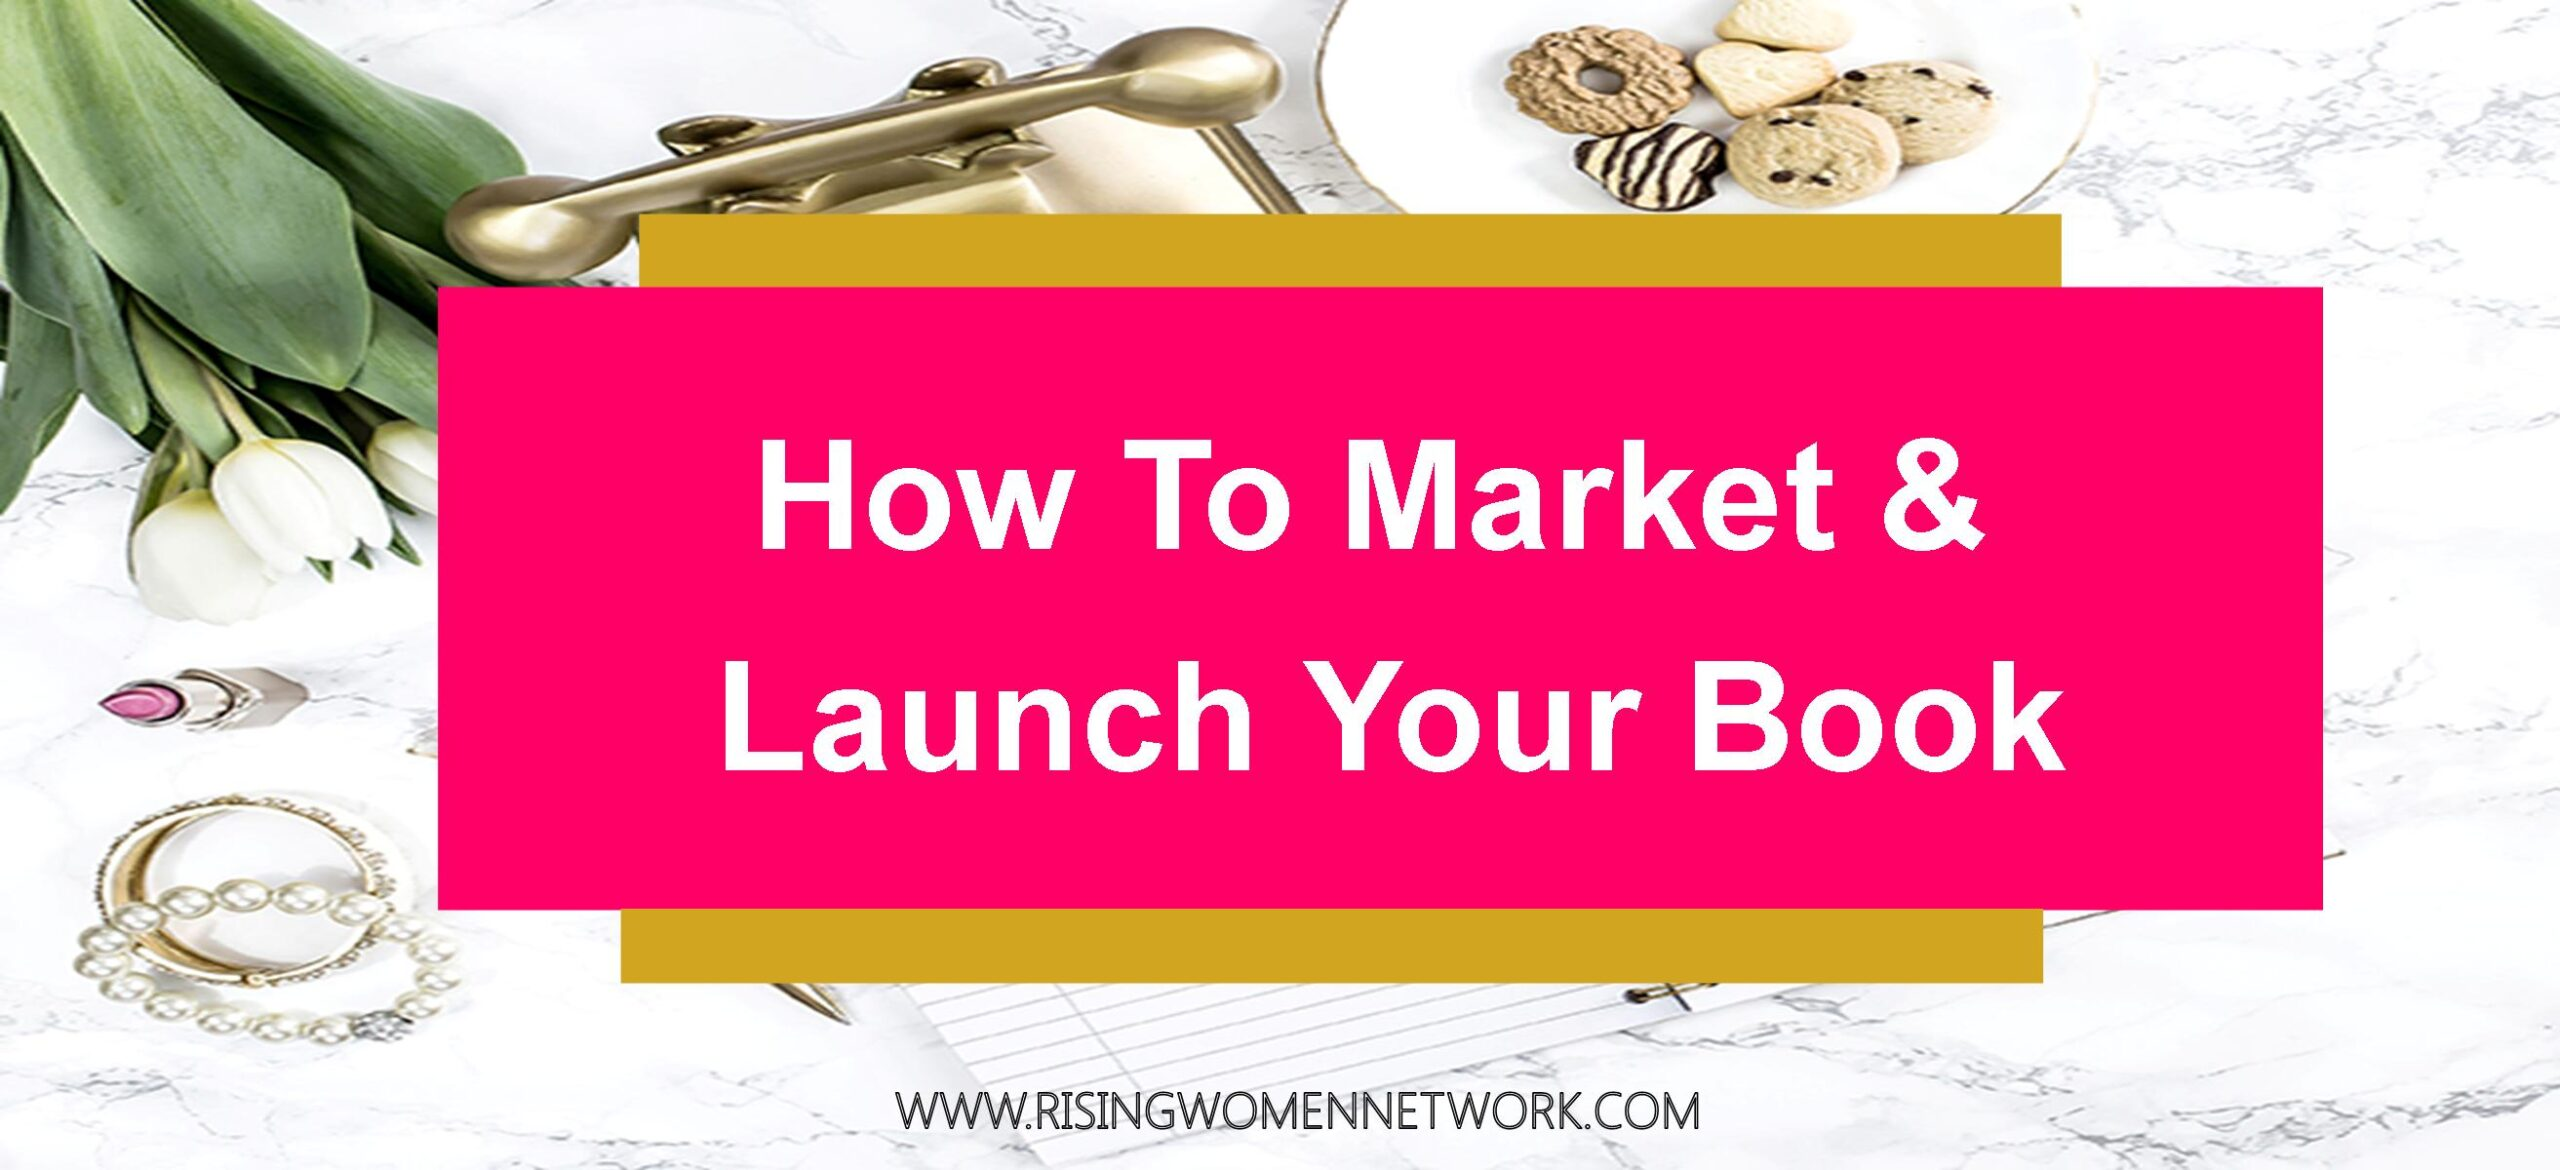 You are writing your book and starting to wonder about how you can create an effective marketing and launch plan so your book can be a best-seller.